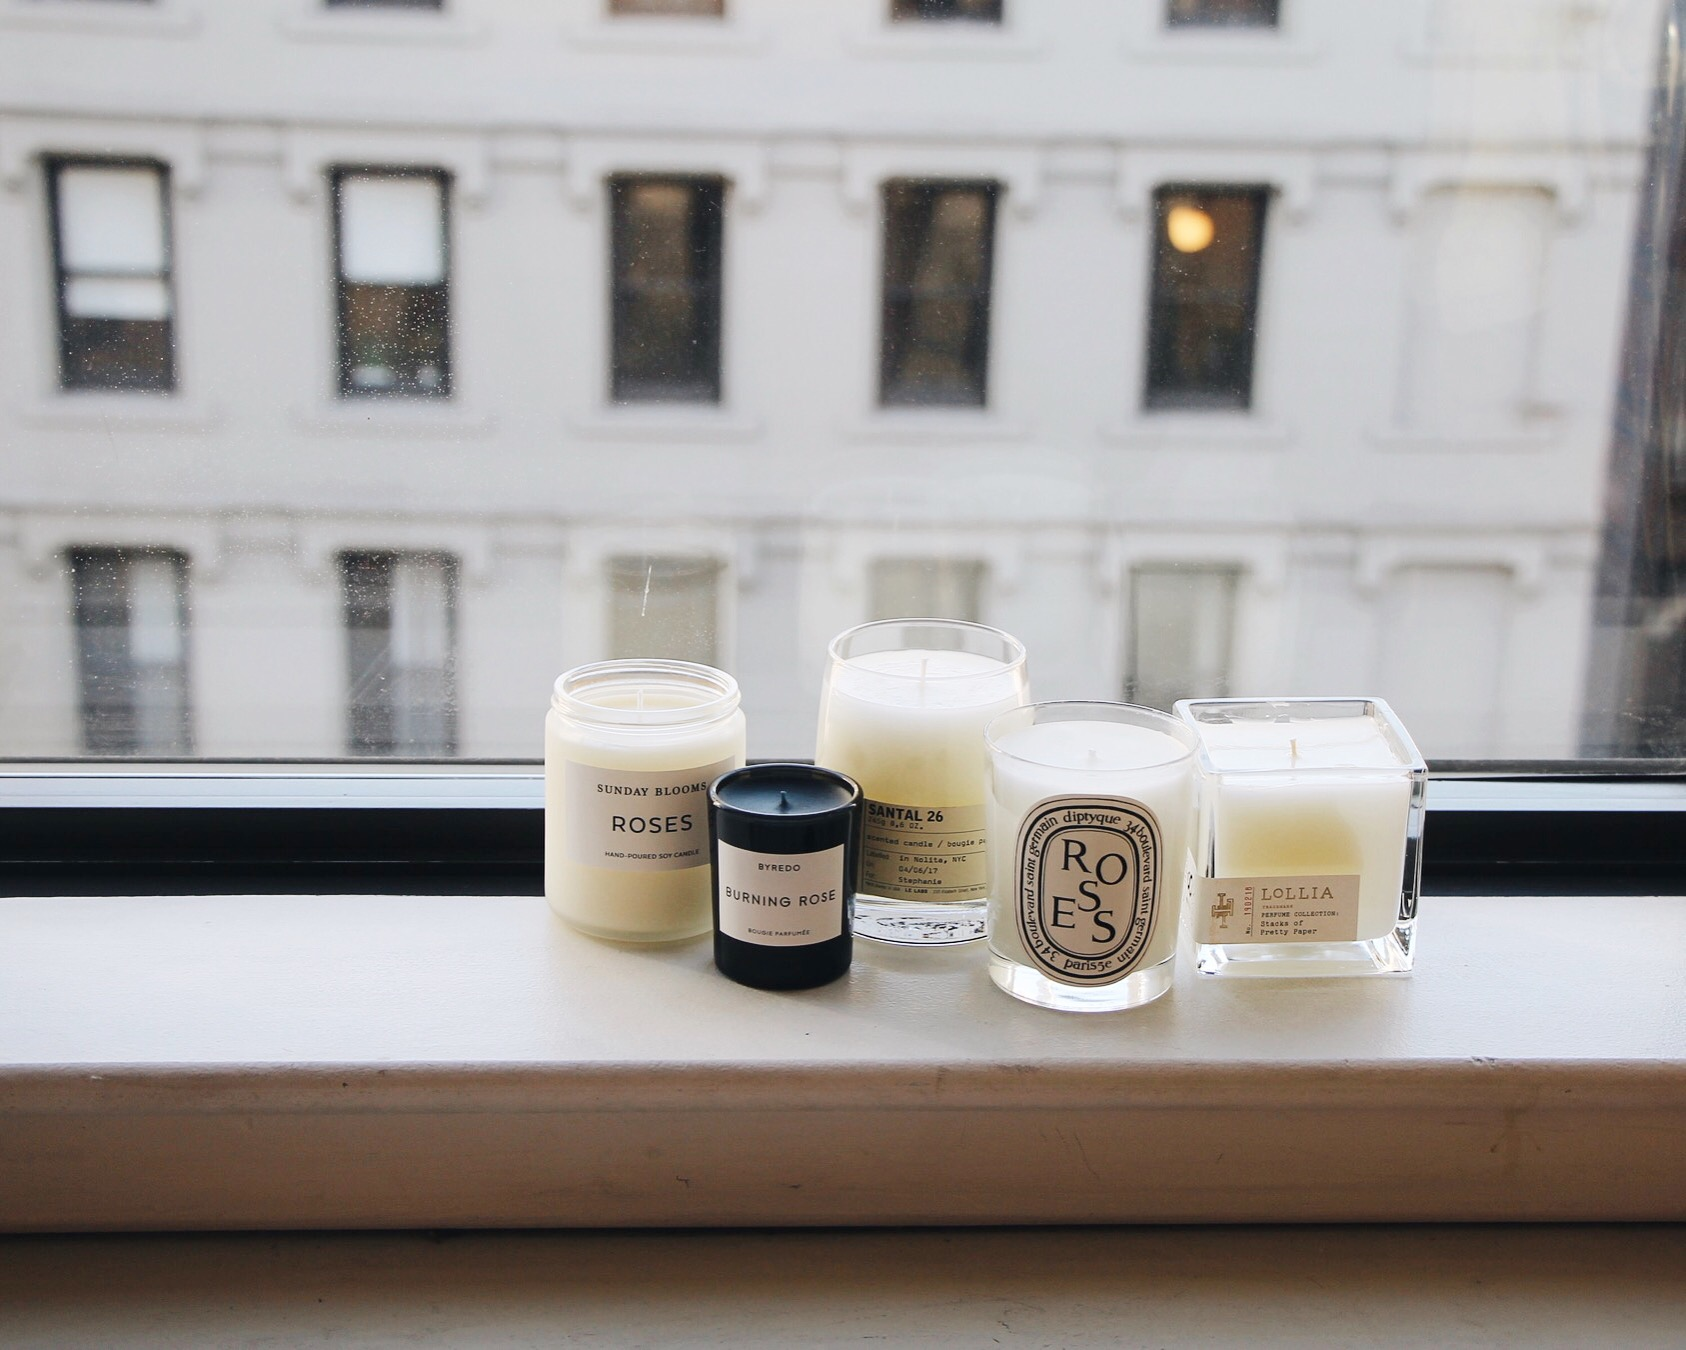 Best Scented Candles, Candle Edit, Best Candles For Home, Le Labo Candle, Byredo Candle, Diptyque Candle, Burning Rose, Sunday Blooms, Lollia, Favorite Candles